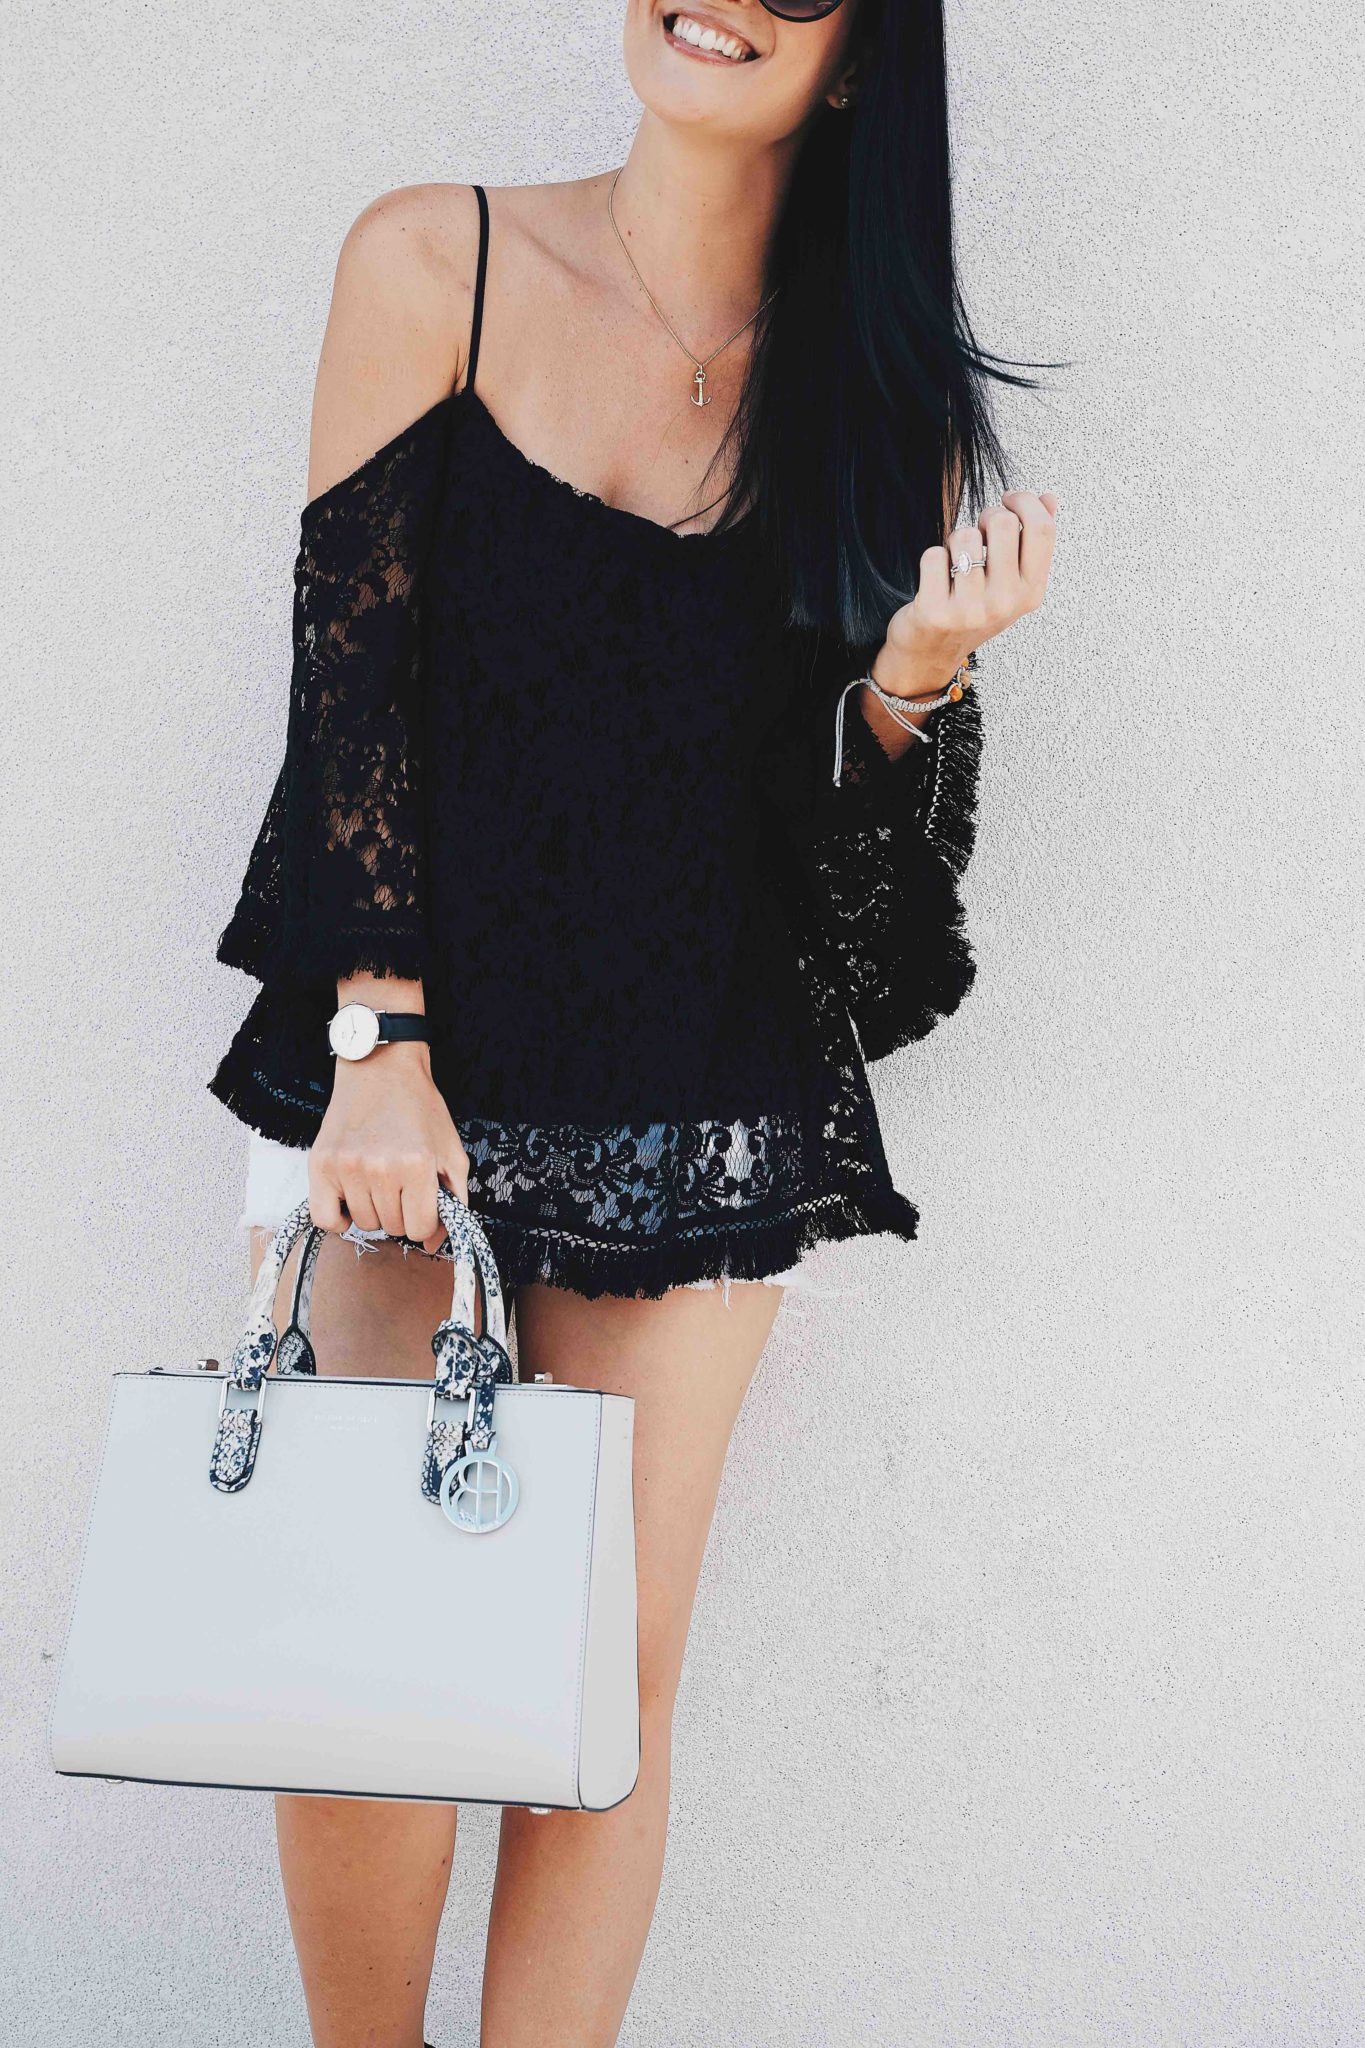 DTKAustin shares a beautiful black Bailey44 lace cold shoulder top, paired with white cutoff shorts, a Henri Bendel bag and Splendid black heels. Click for more information and photos. | how to style a cold shoulder top | how to wear a cold shoulder top | cold shoulder top style tips | summer fashion tips | summer outfit ideas | summer style tips | what to wear for summer | warm weather fashion | fashion for summer | style tips for summer | outfit ideas for summer || Dressed to Kill